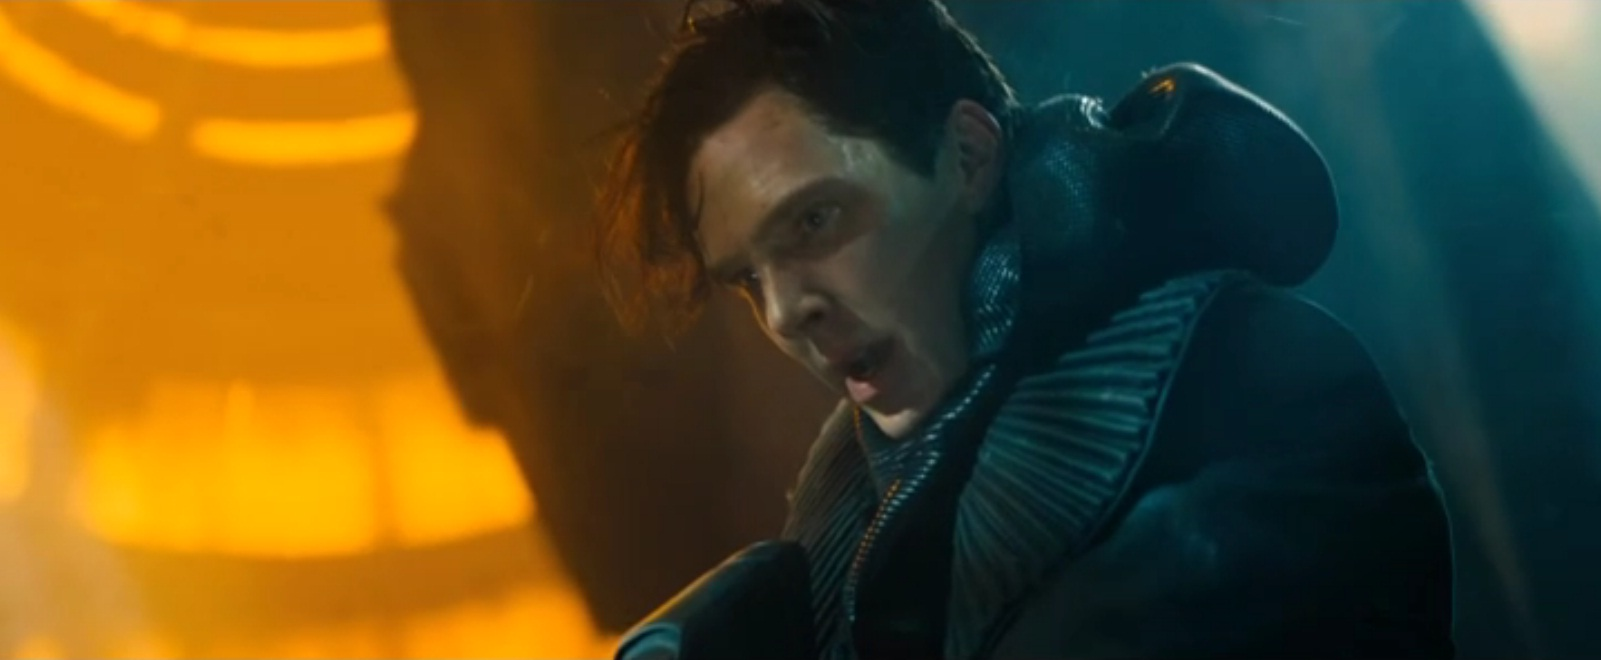 Benedict Cumberbatch seeks vengeance in Star Trek Into Darkness teaser trailer